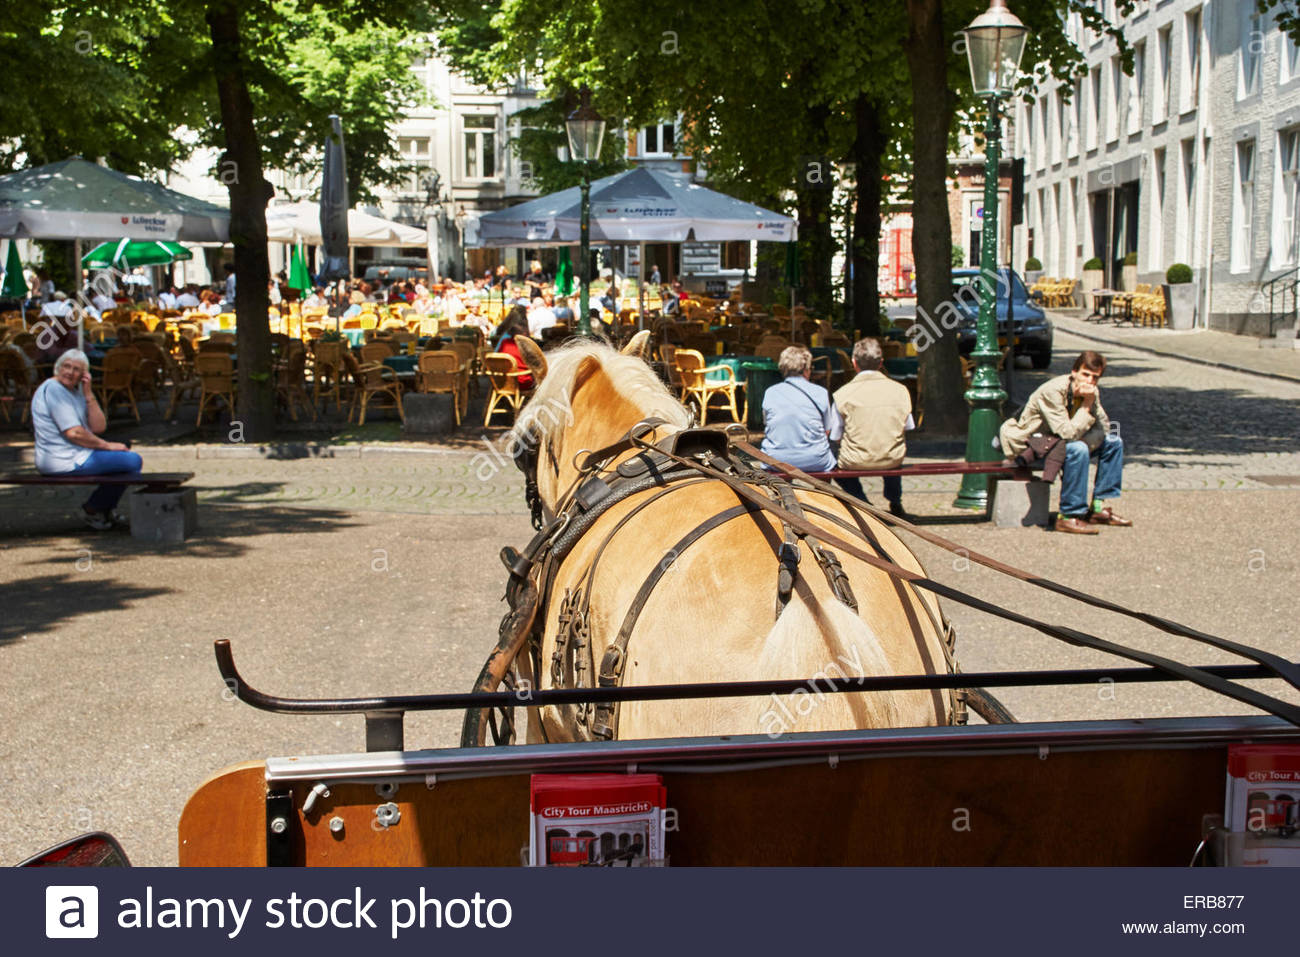 city tours of maastricht in the netherlands by an open air cafe bar - Stock Image